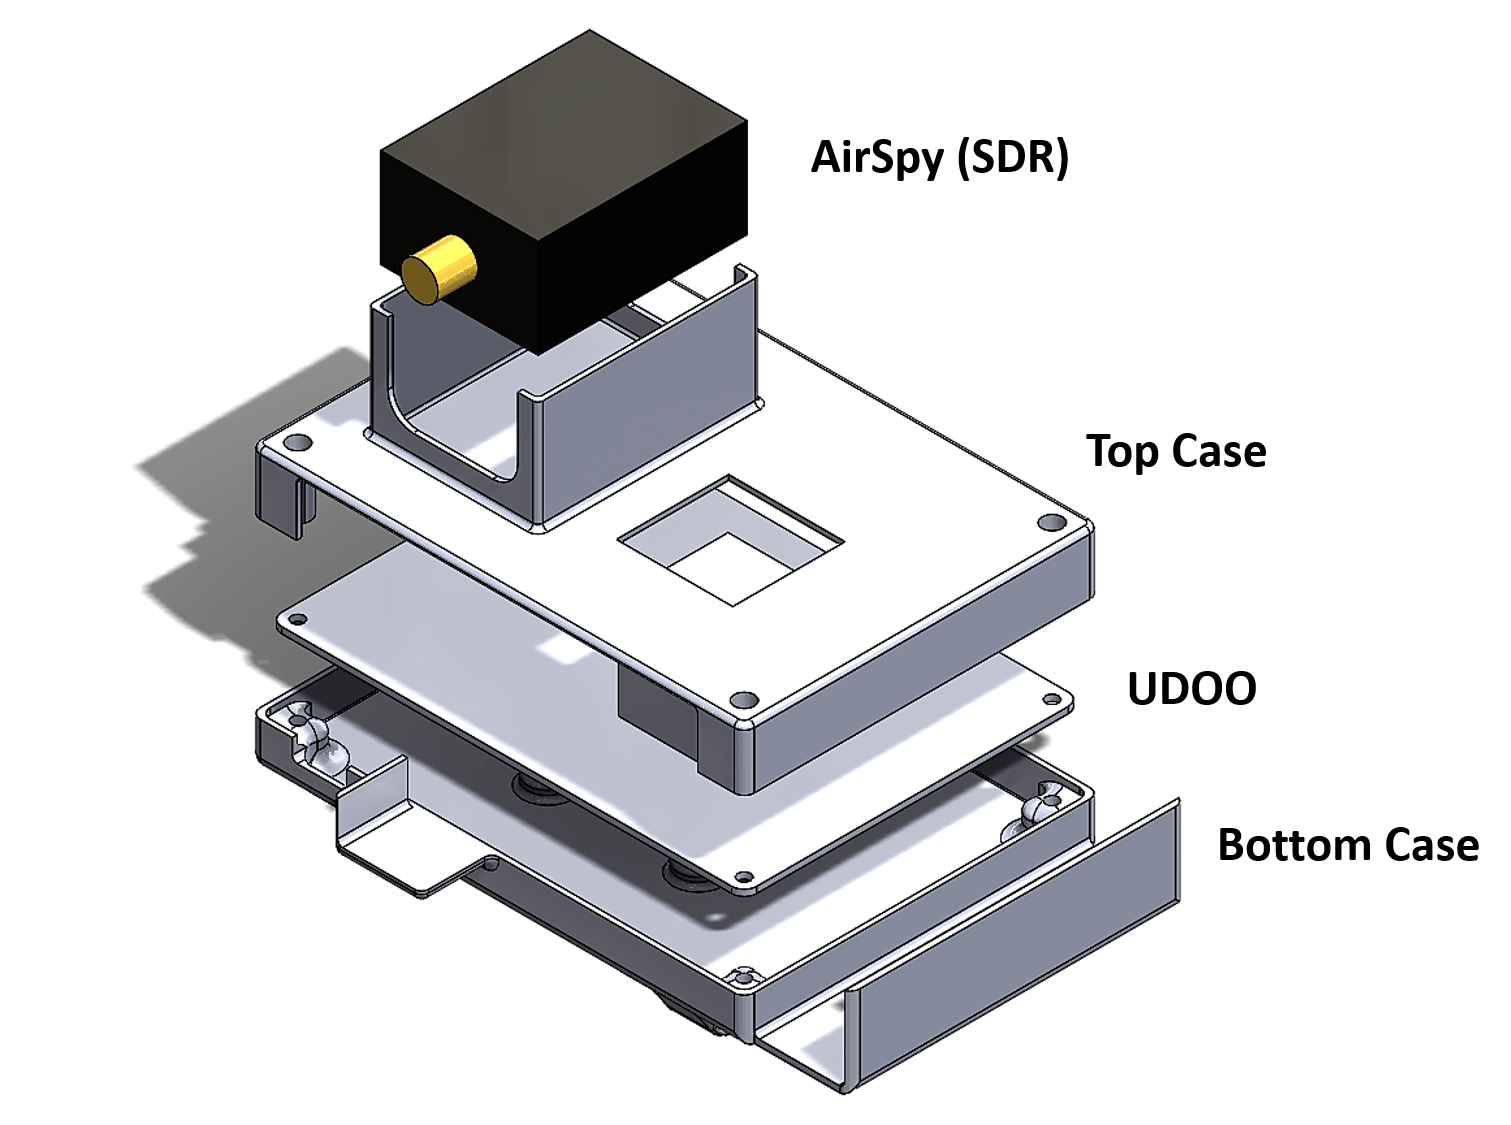 UDOO Case Install